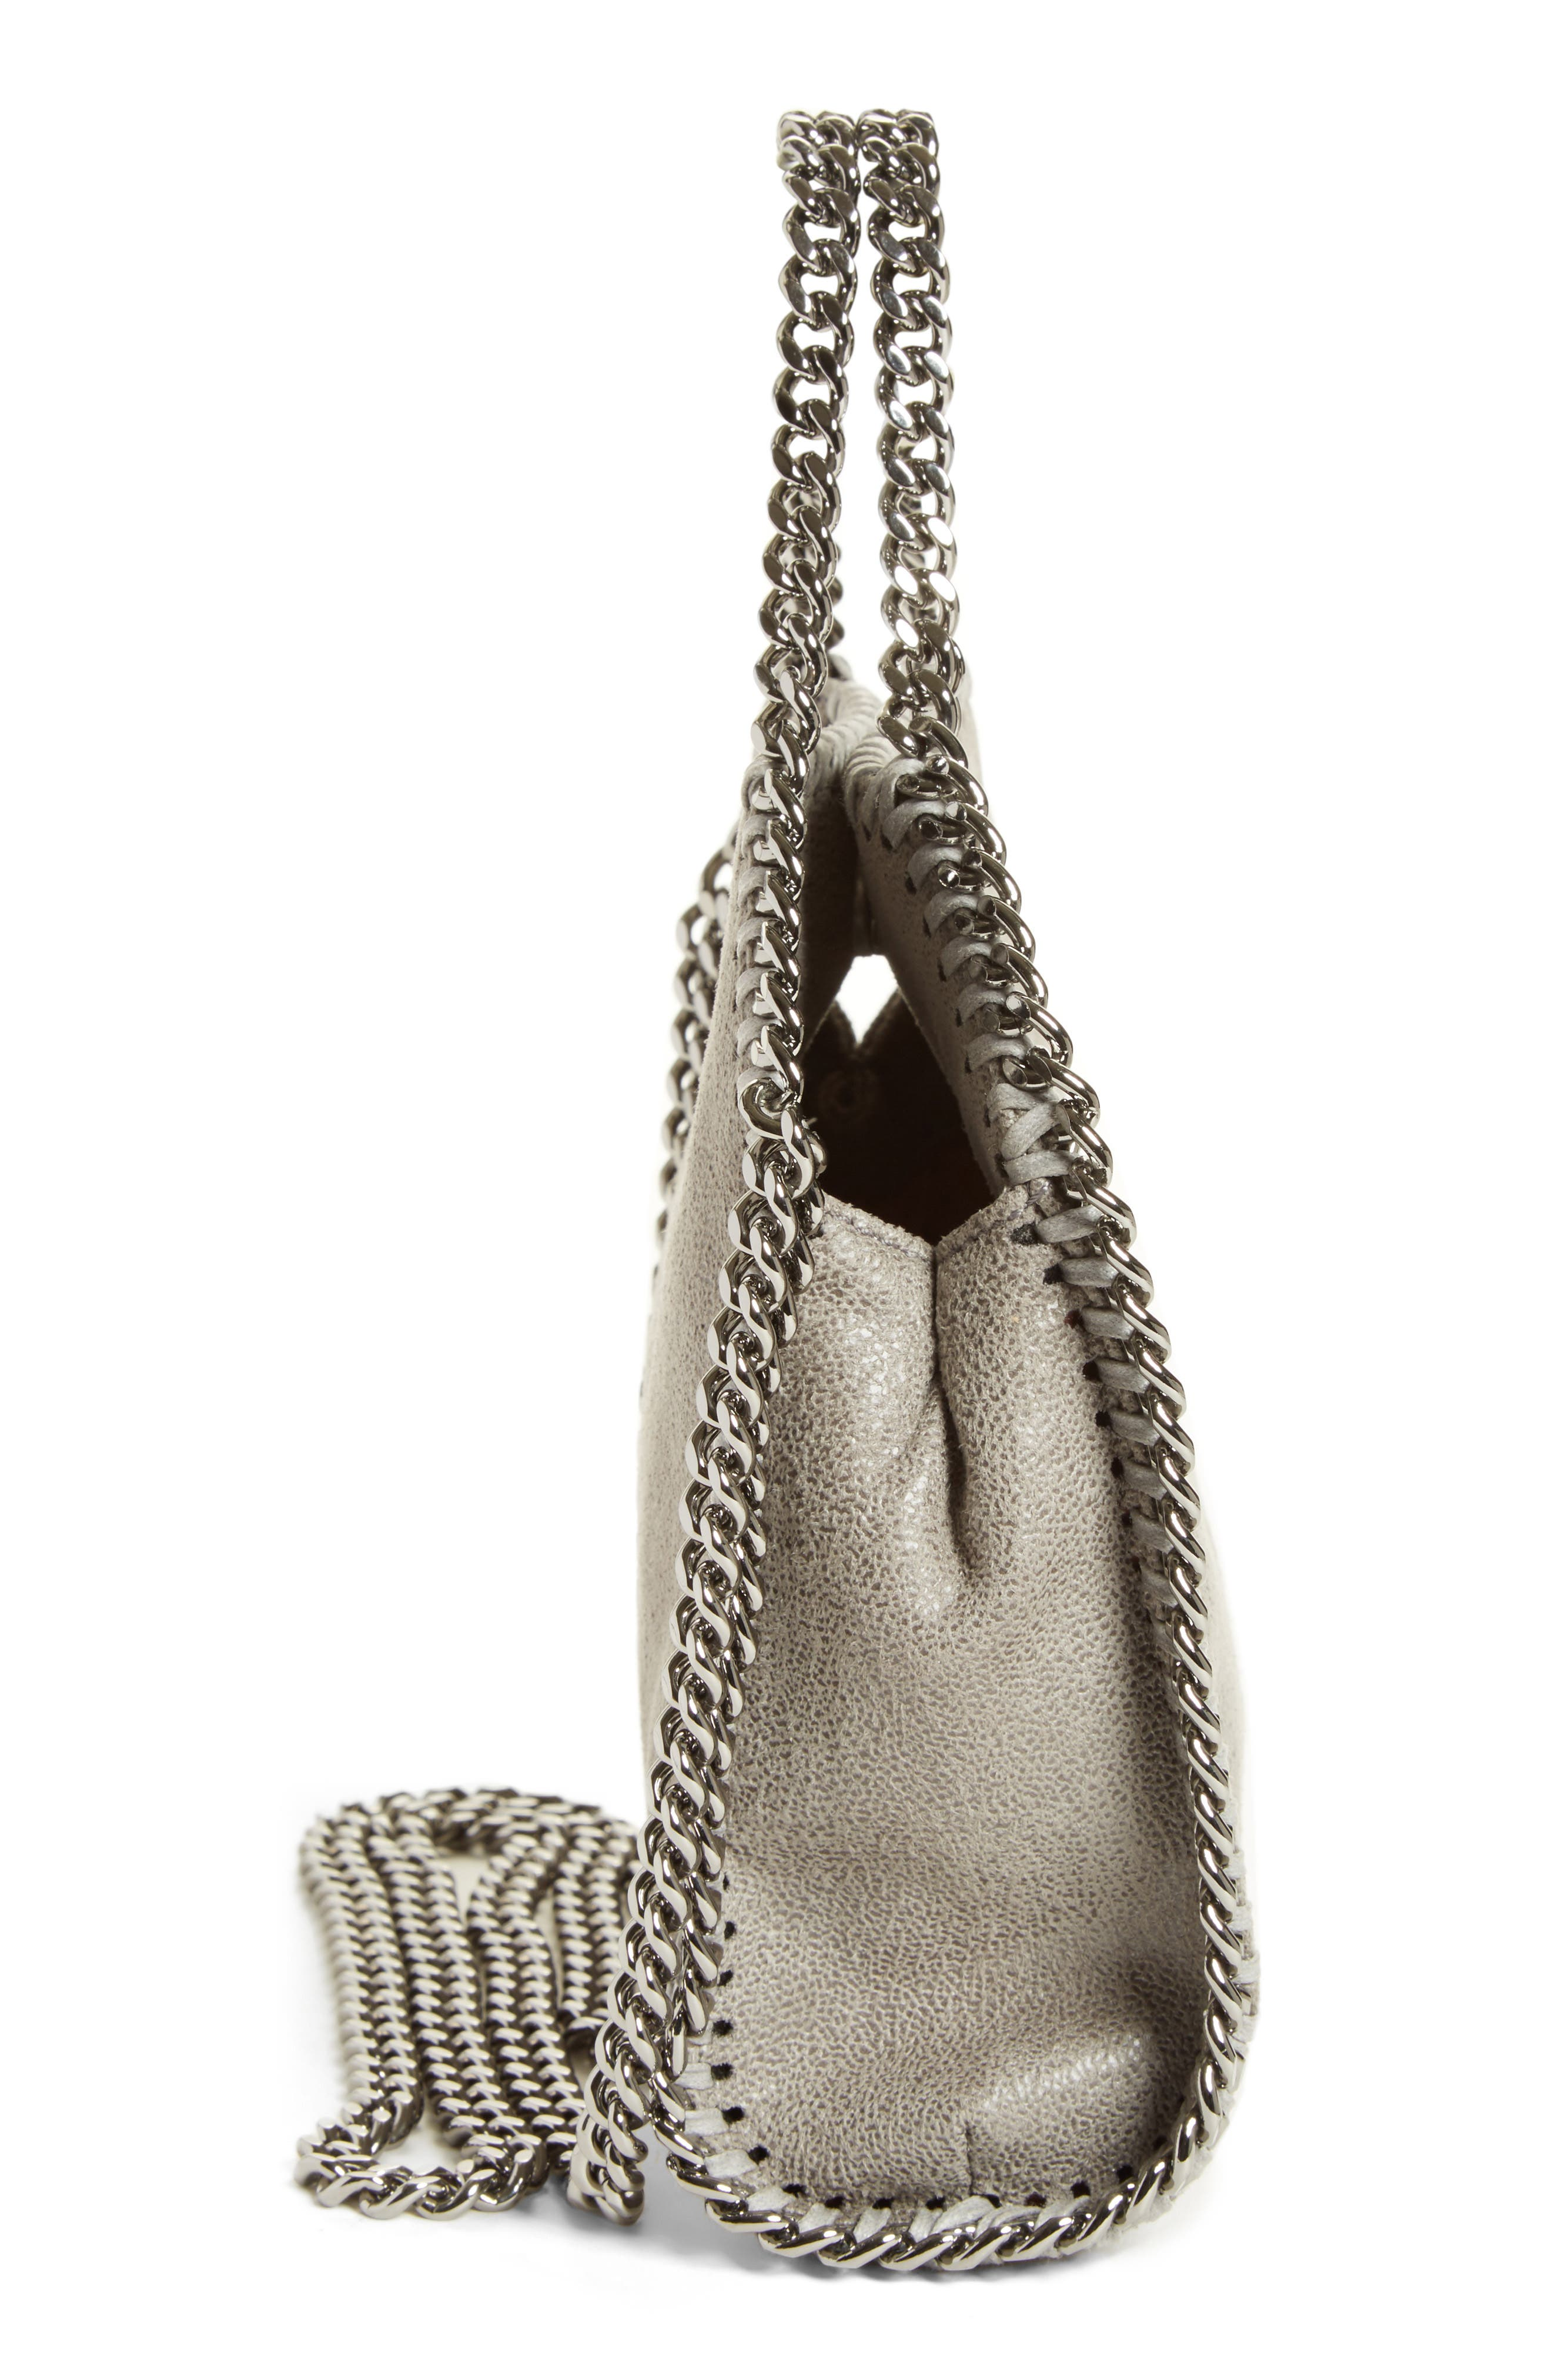 STELLA MCCARTNEY, 'Tiny Falabella' Faux Leather Crossbody Bag, Alternate thumbnail 5, color, 053